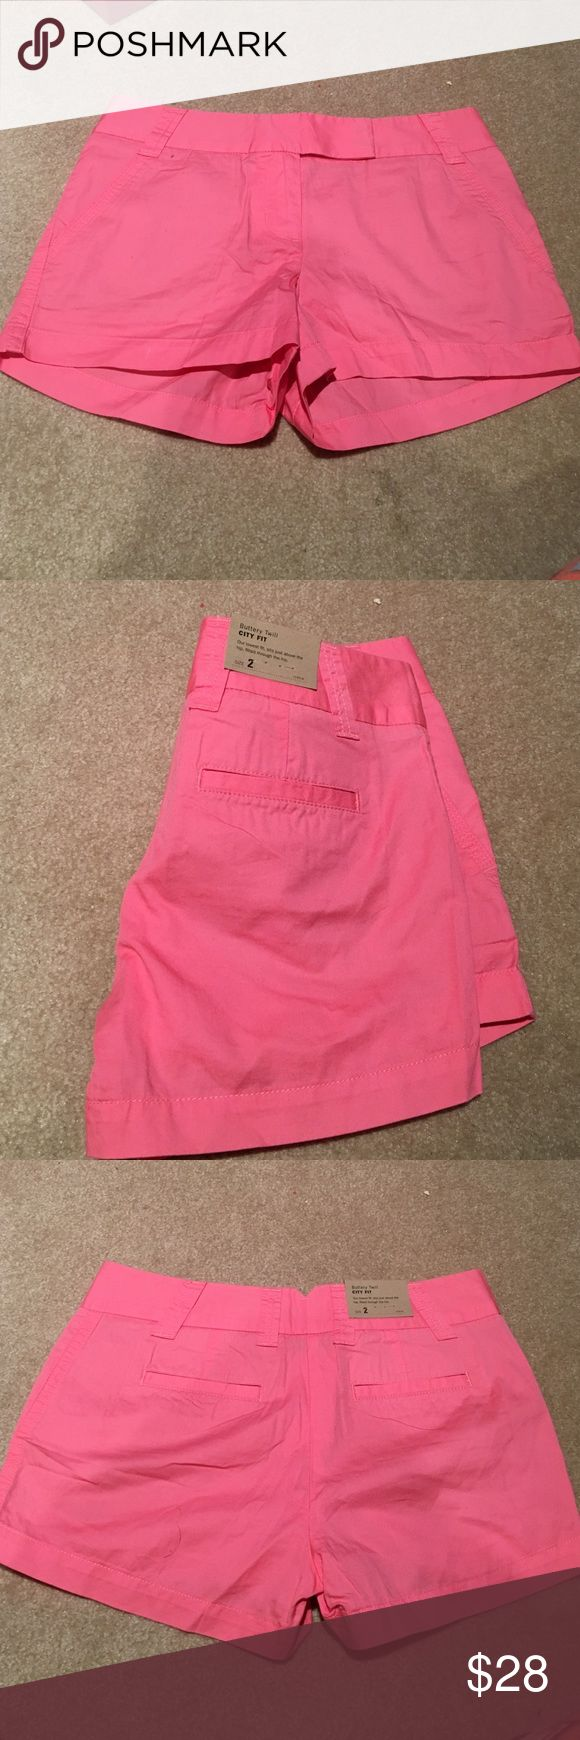 NWT J. Crew salmon shorts size 2 NWT J. Crew salmon shorts size 2. perfect for summer! open to offers. J. Crew Shorts